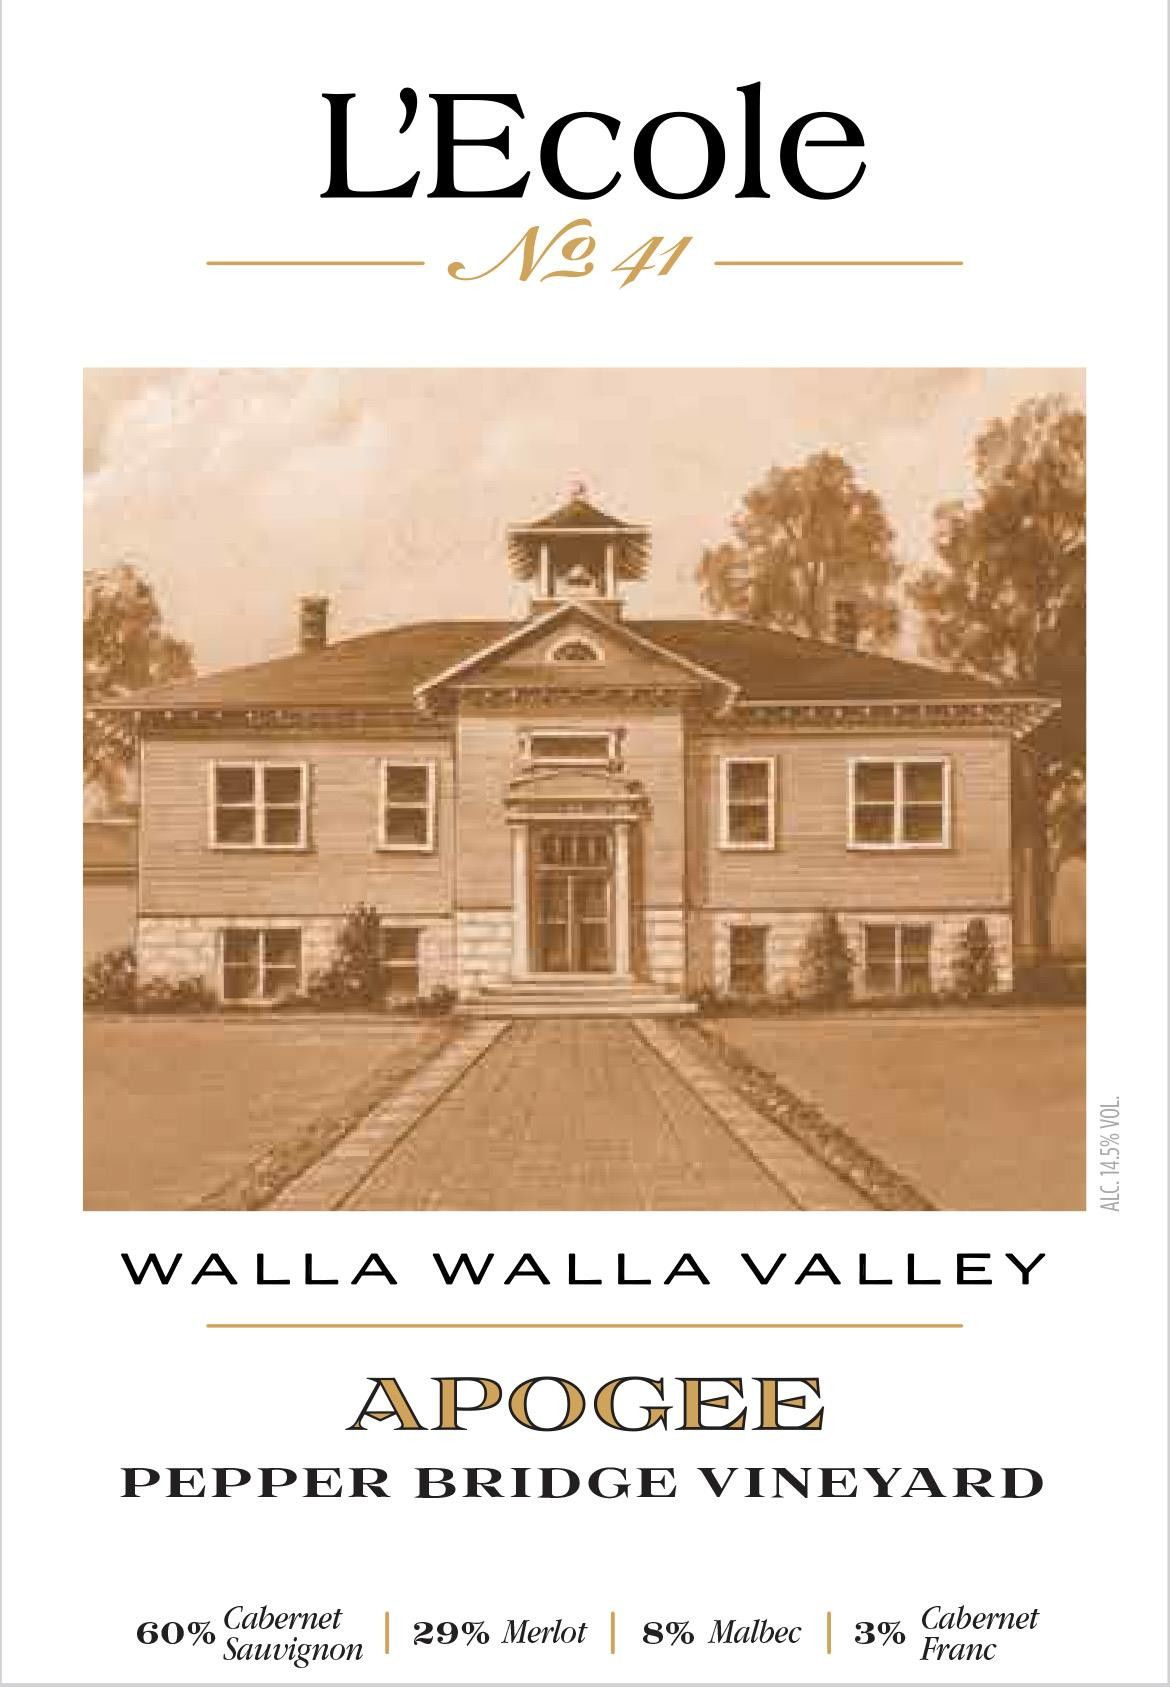 L'Ecole 41 Pepper Bridge Vineyard Apogee 2015 Front Label